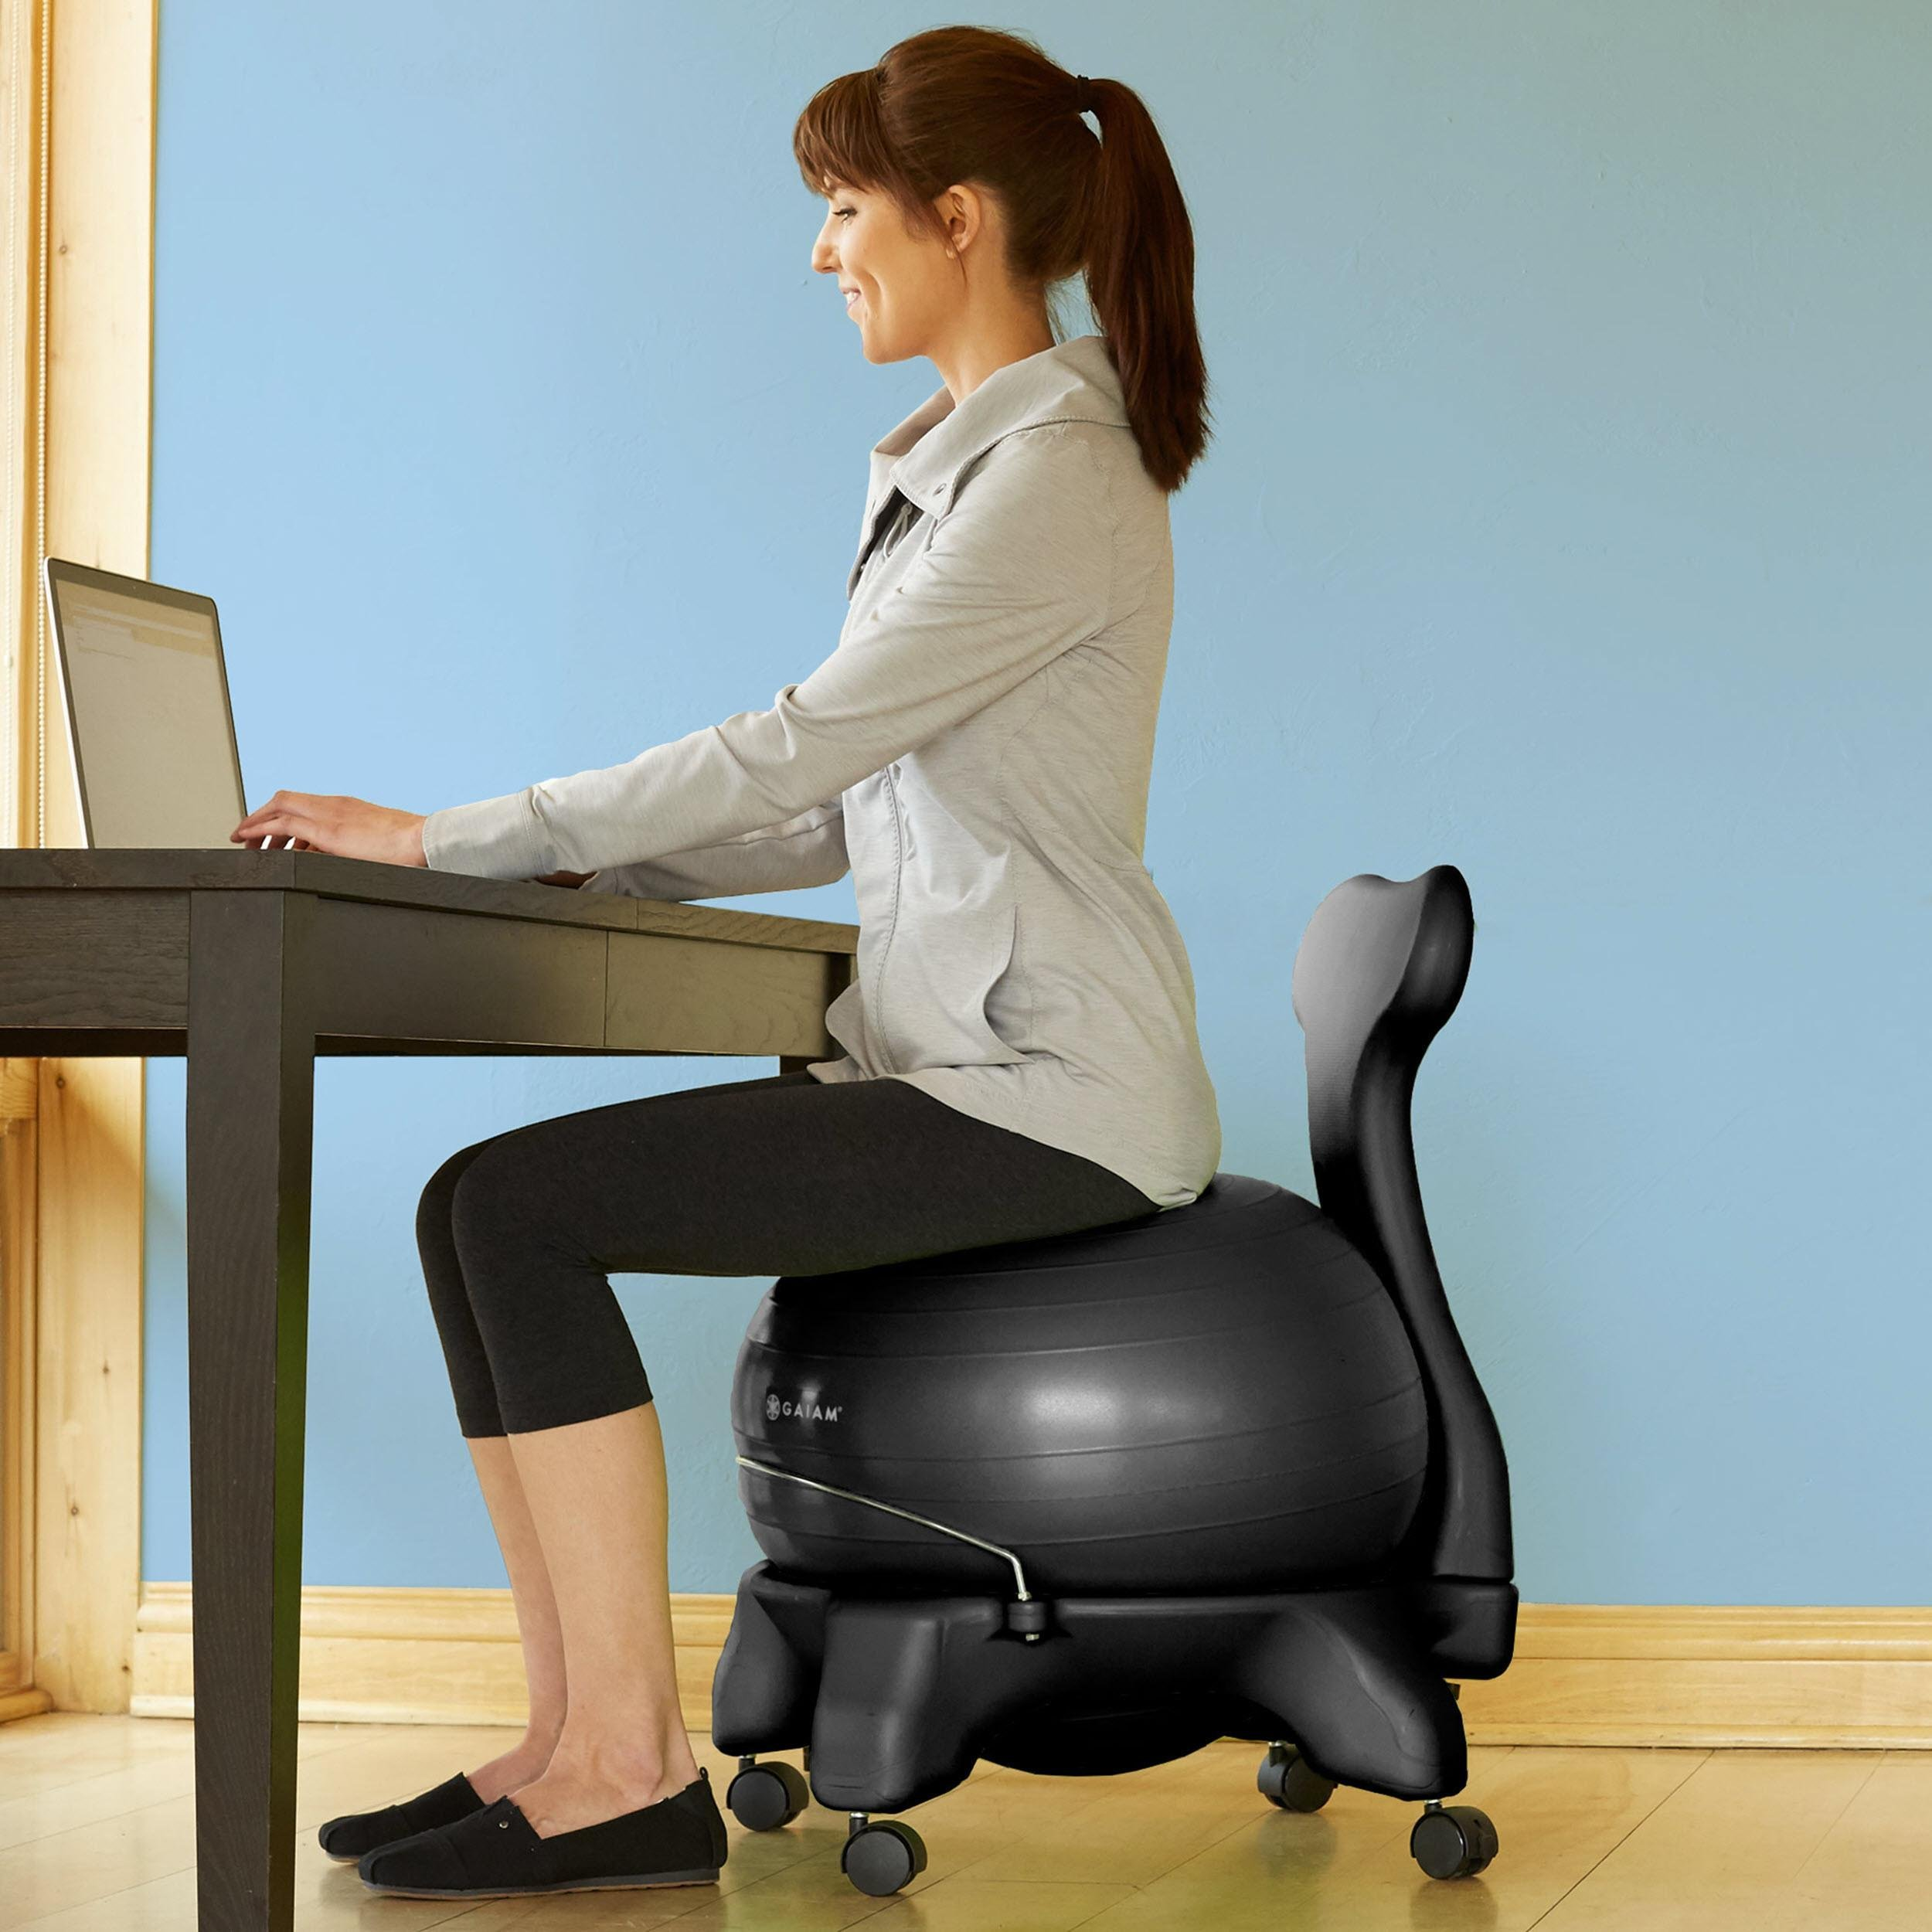 Amazon Com Gaiam Balance Ball Chair Exercise Stability